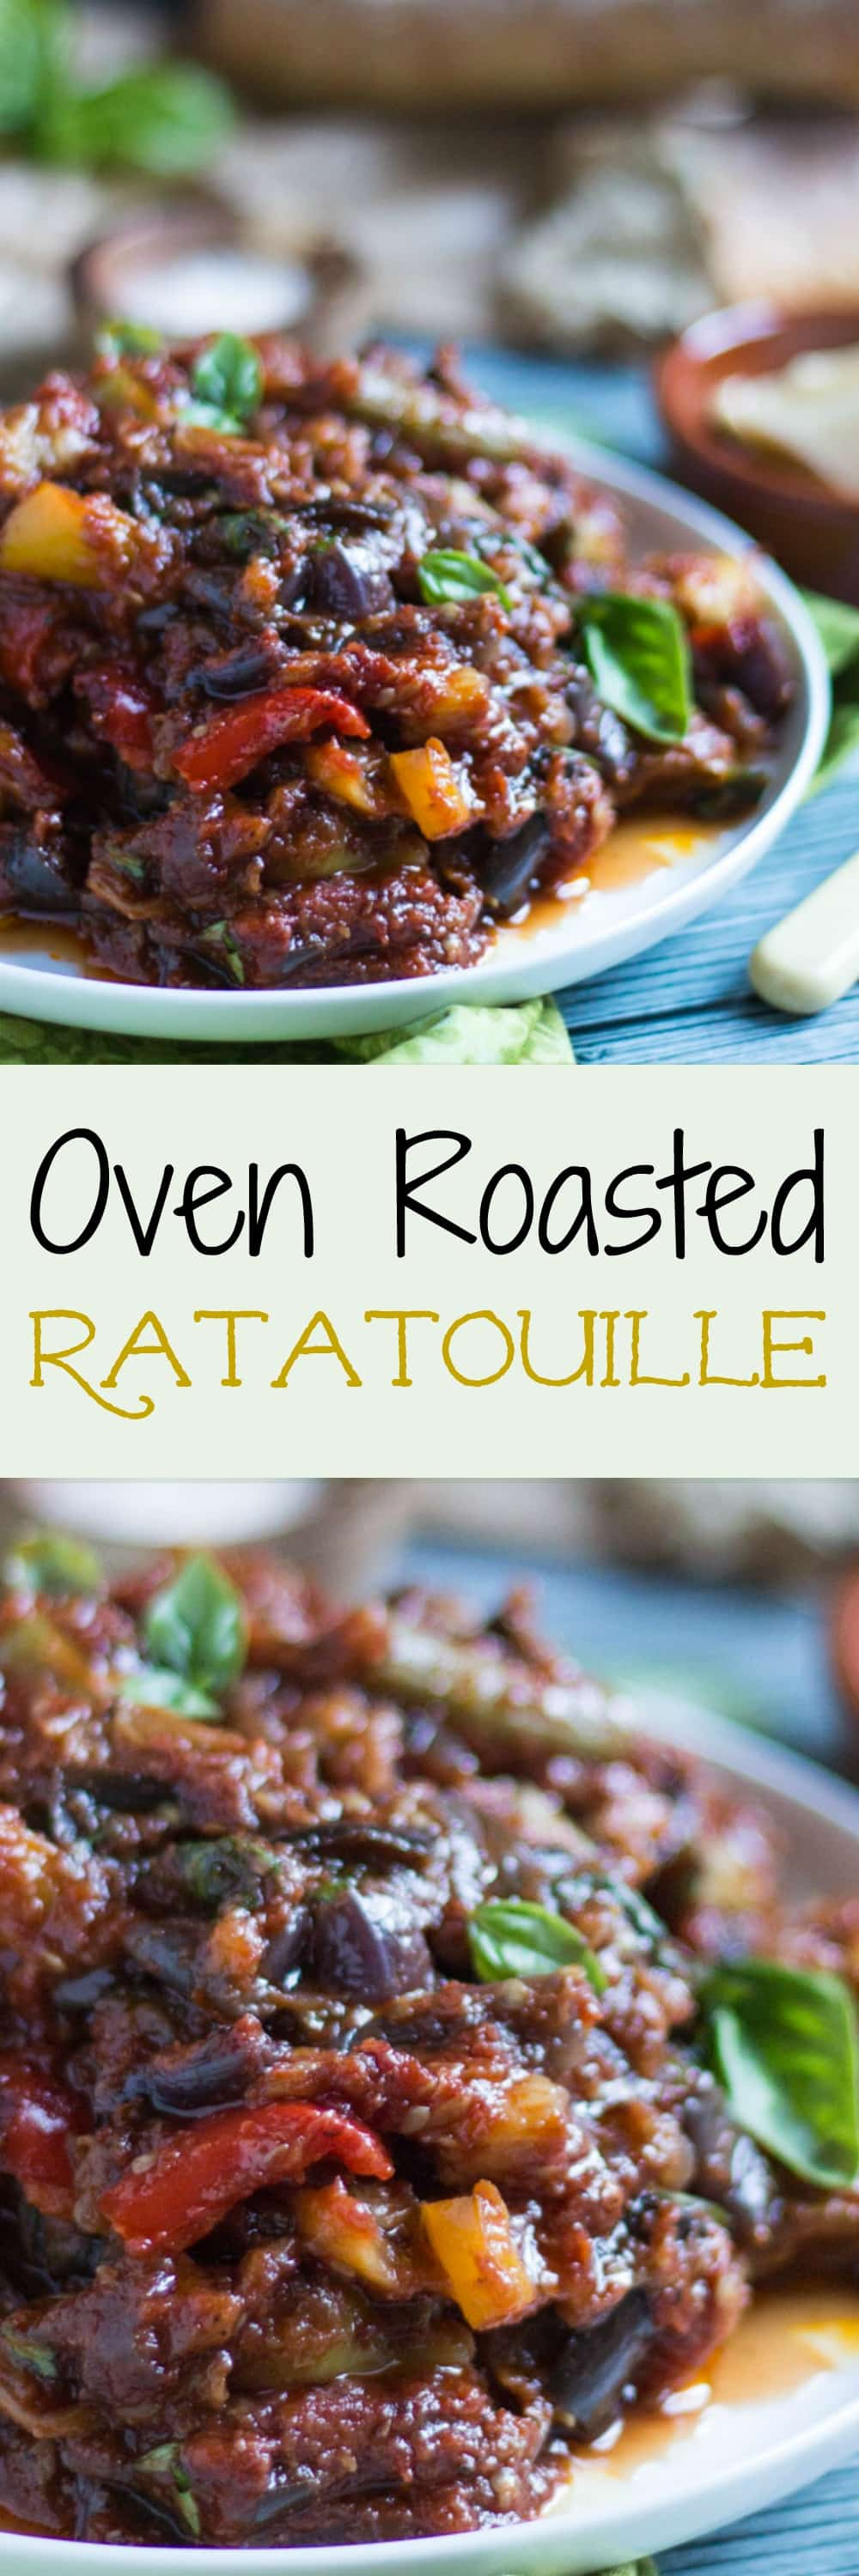 Oven Roasted Ratatouille is an extremely versatile dish, and is fantastic hot or cold. It freezes well, so keep some in the freezer for emergencies.